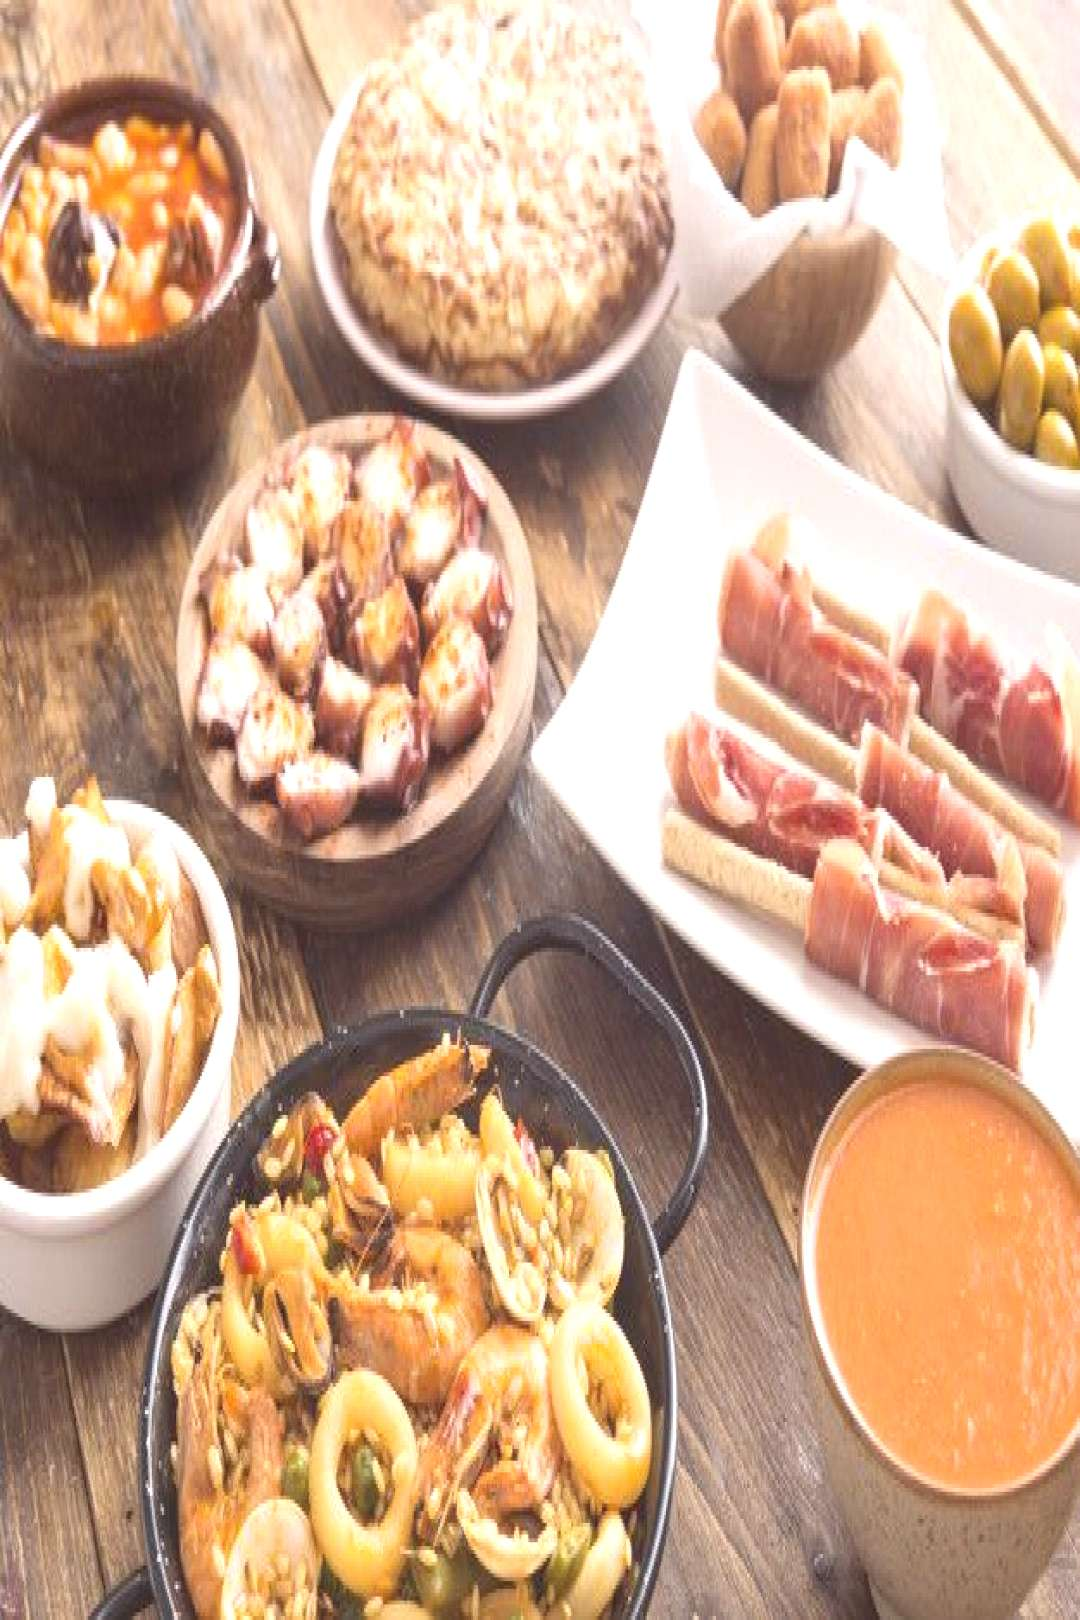 Spanish Food That You Should Try In Barangaroo   - Food and Restaurants